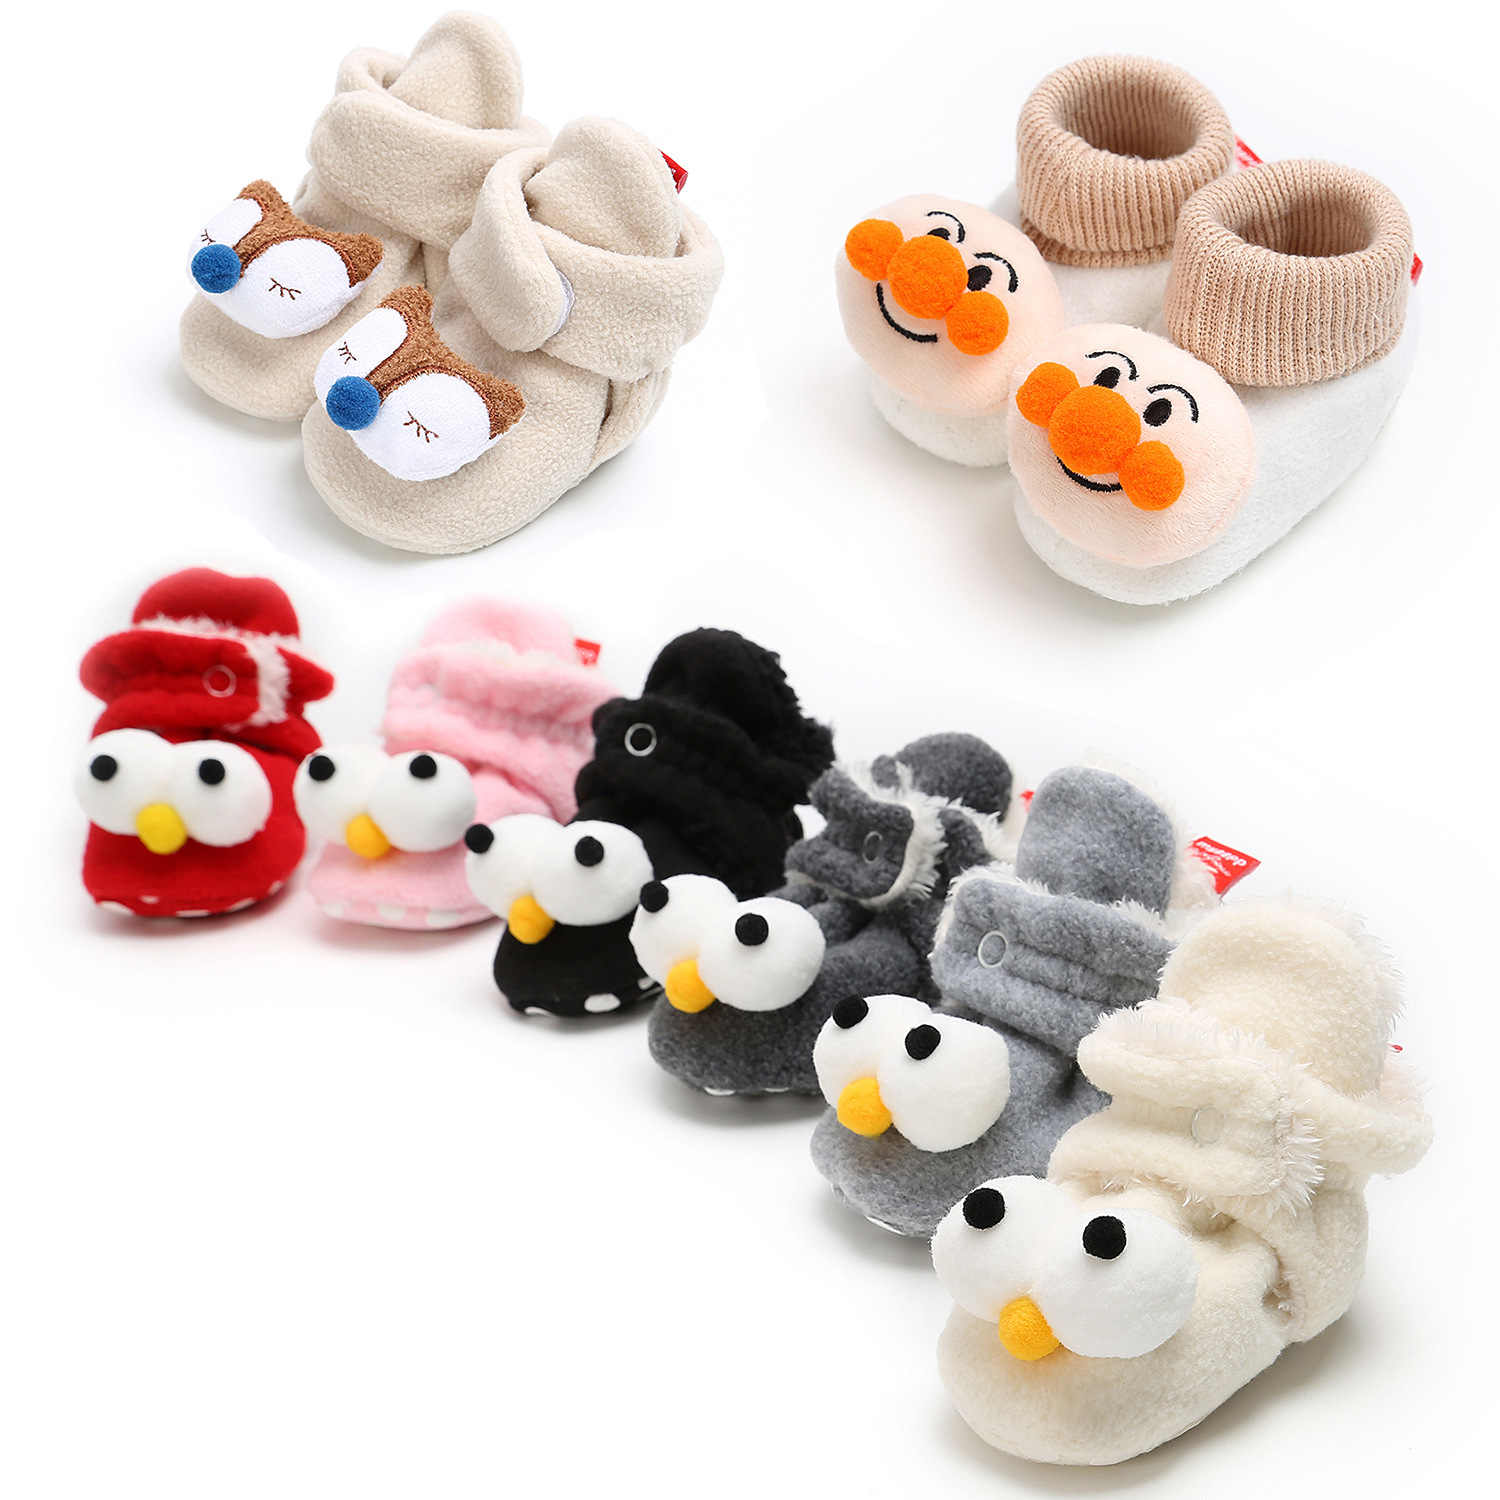 755d6ba2e49c7 Winter Cute Cat Animal Style Baby Boots Fleece Worm Cotton padded ...